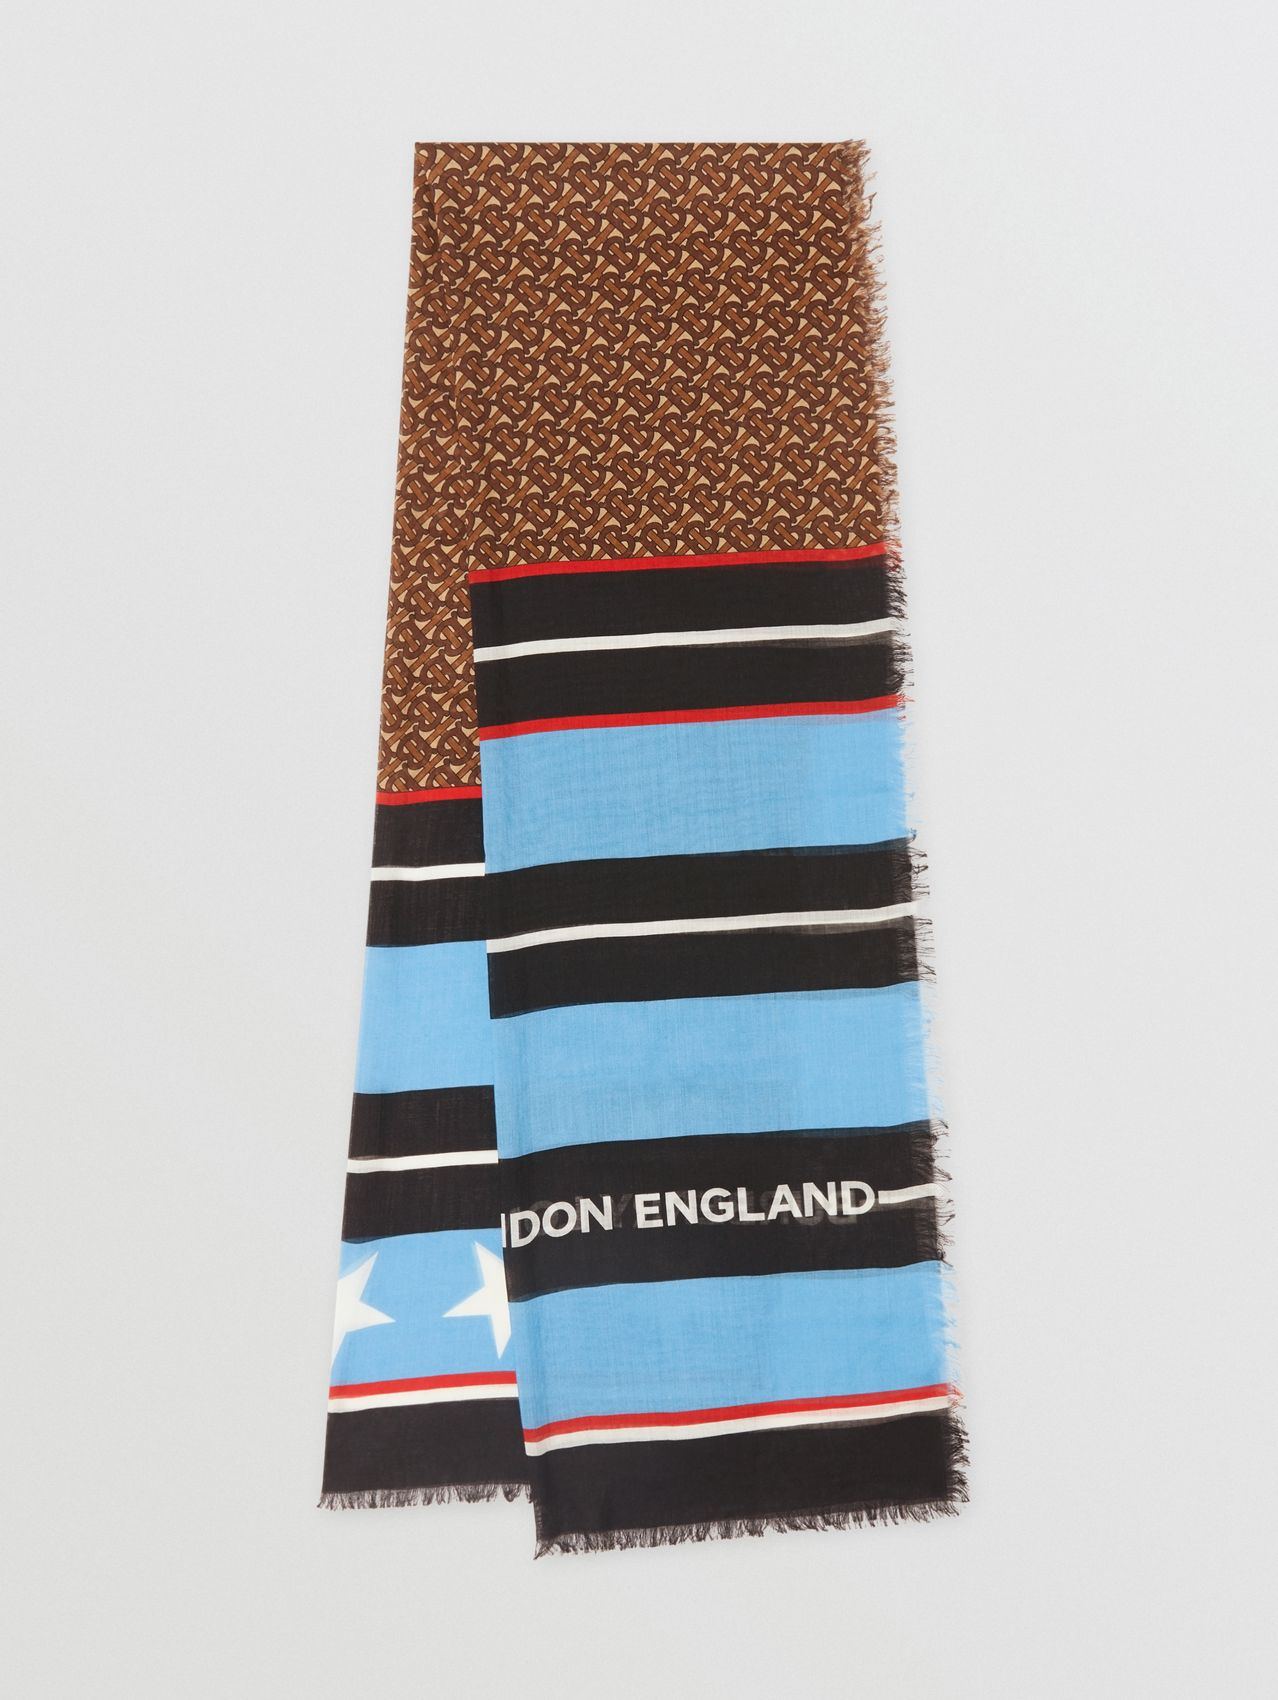 Monogram and Stripe Print Silk Wool Scarf in Blue Topaz/bridle Brown